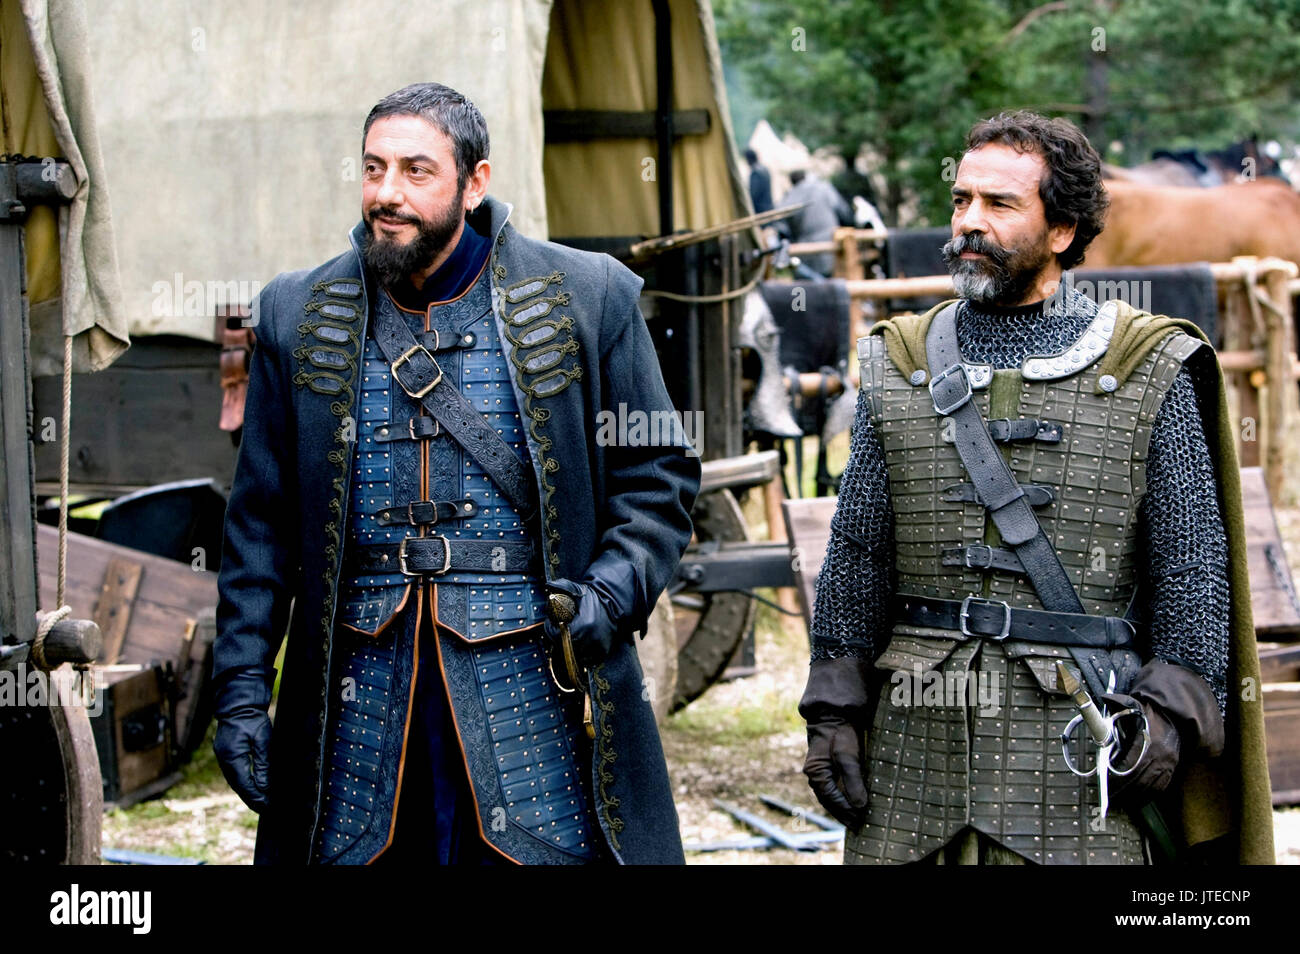 SERGIO CASTELLITTO & DAMIAN ALCAZAR THE CHRONICLES OF NARNIA: PRINCE CASPIAN (2008) - Stock Image